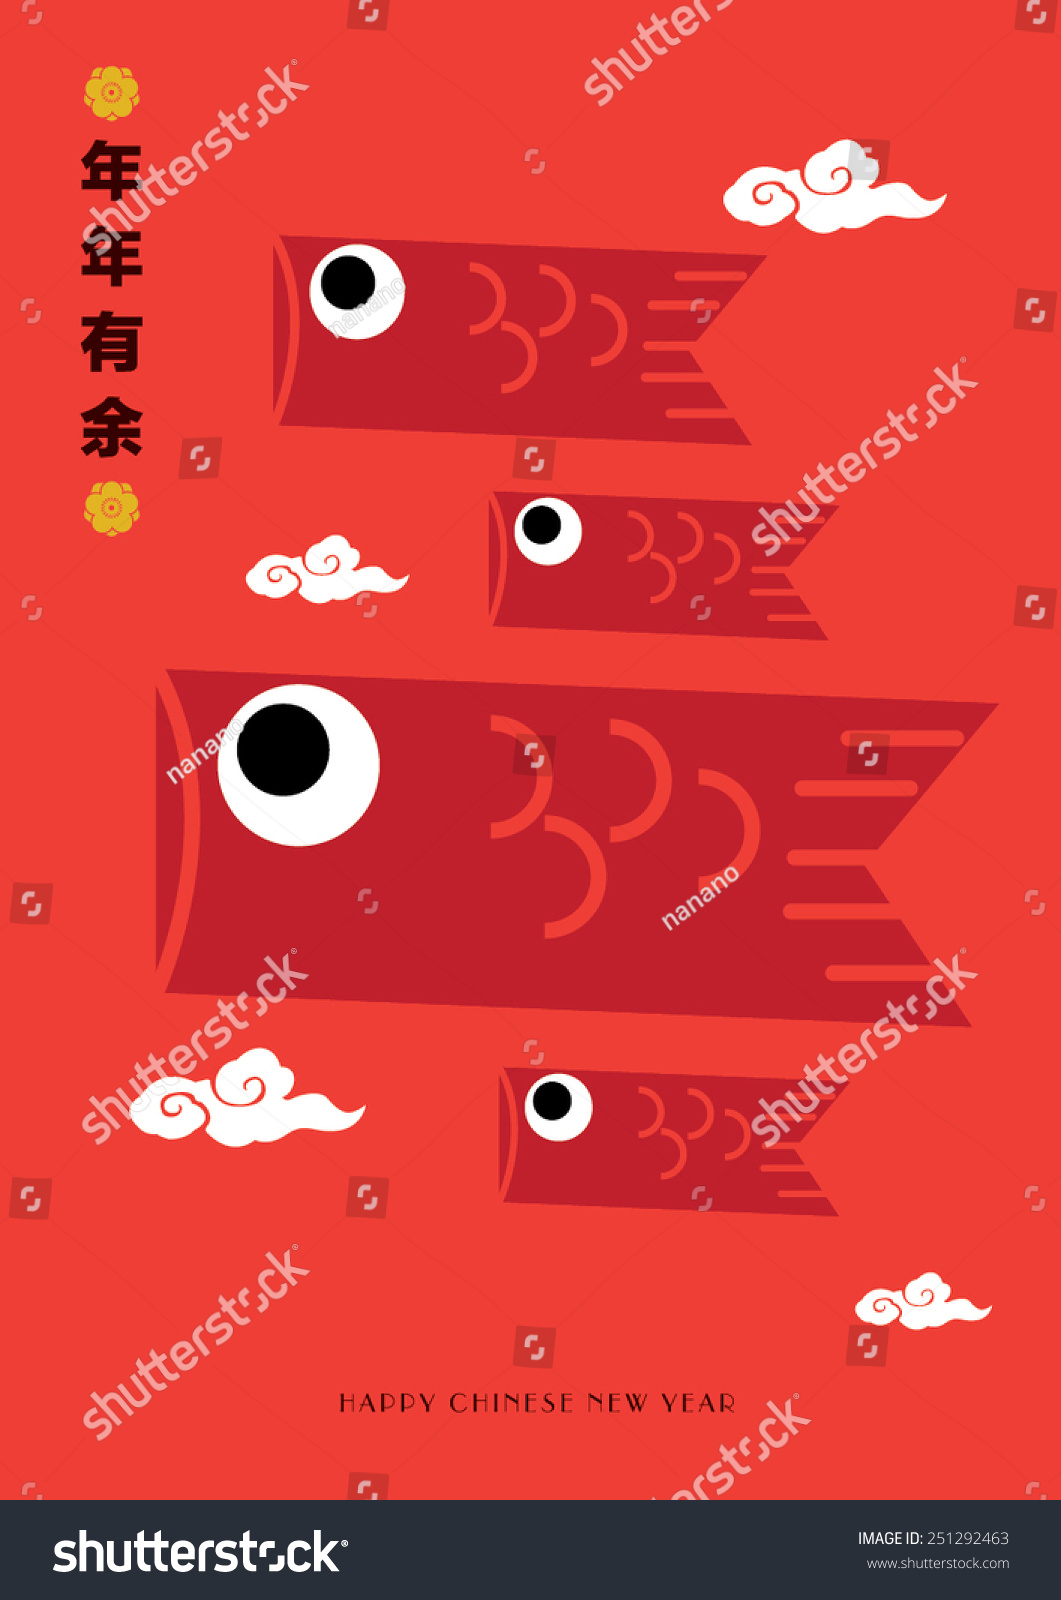 happy chinese new year 2015 greetings stock vector 251292463 shutterstock - When Is The Chinese New Year 2015